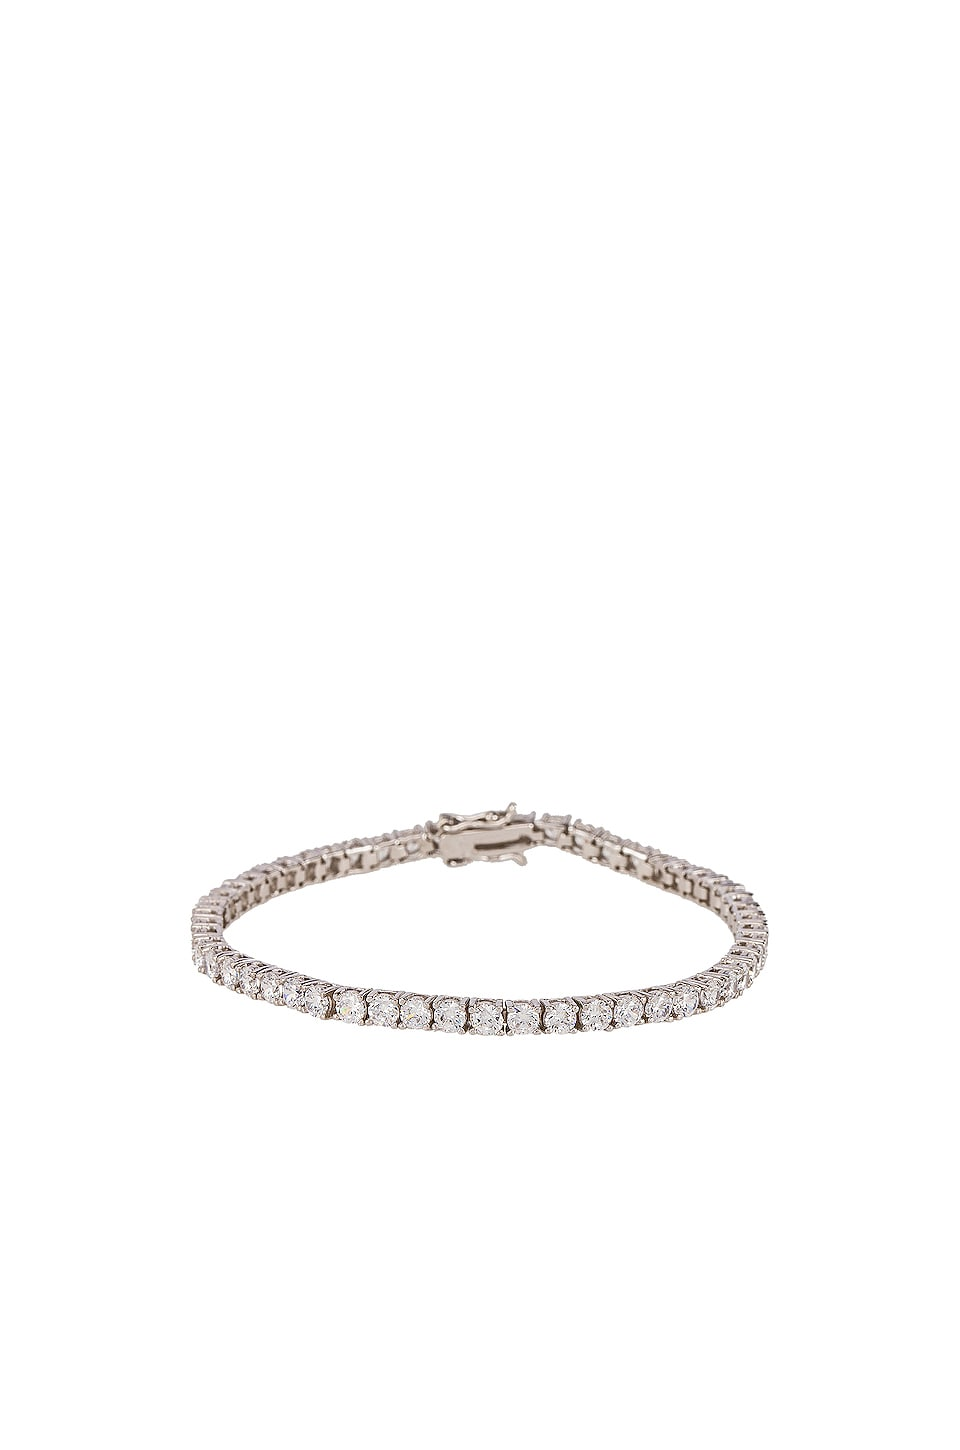 The M Jewelers NY The Pave Tennis Bracelet in Silver